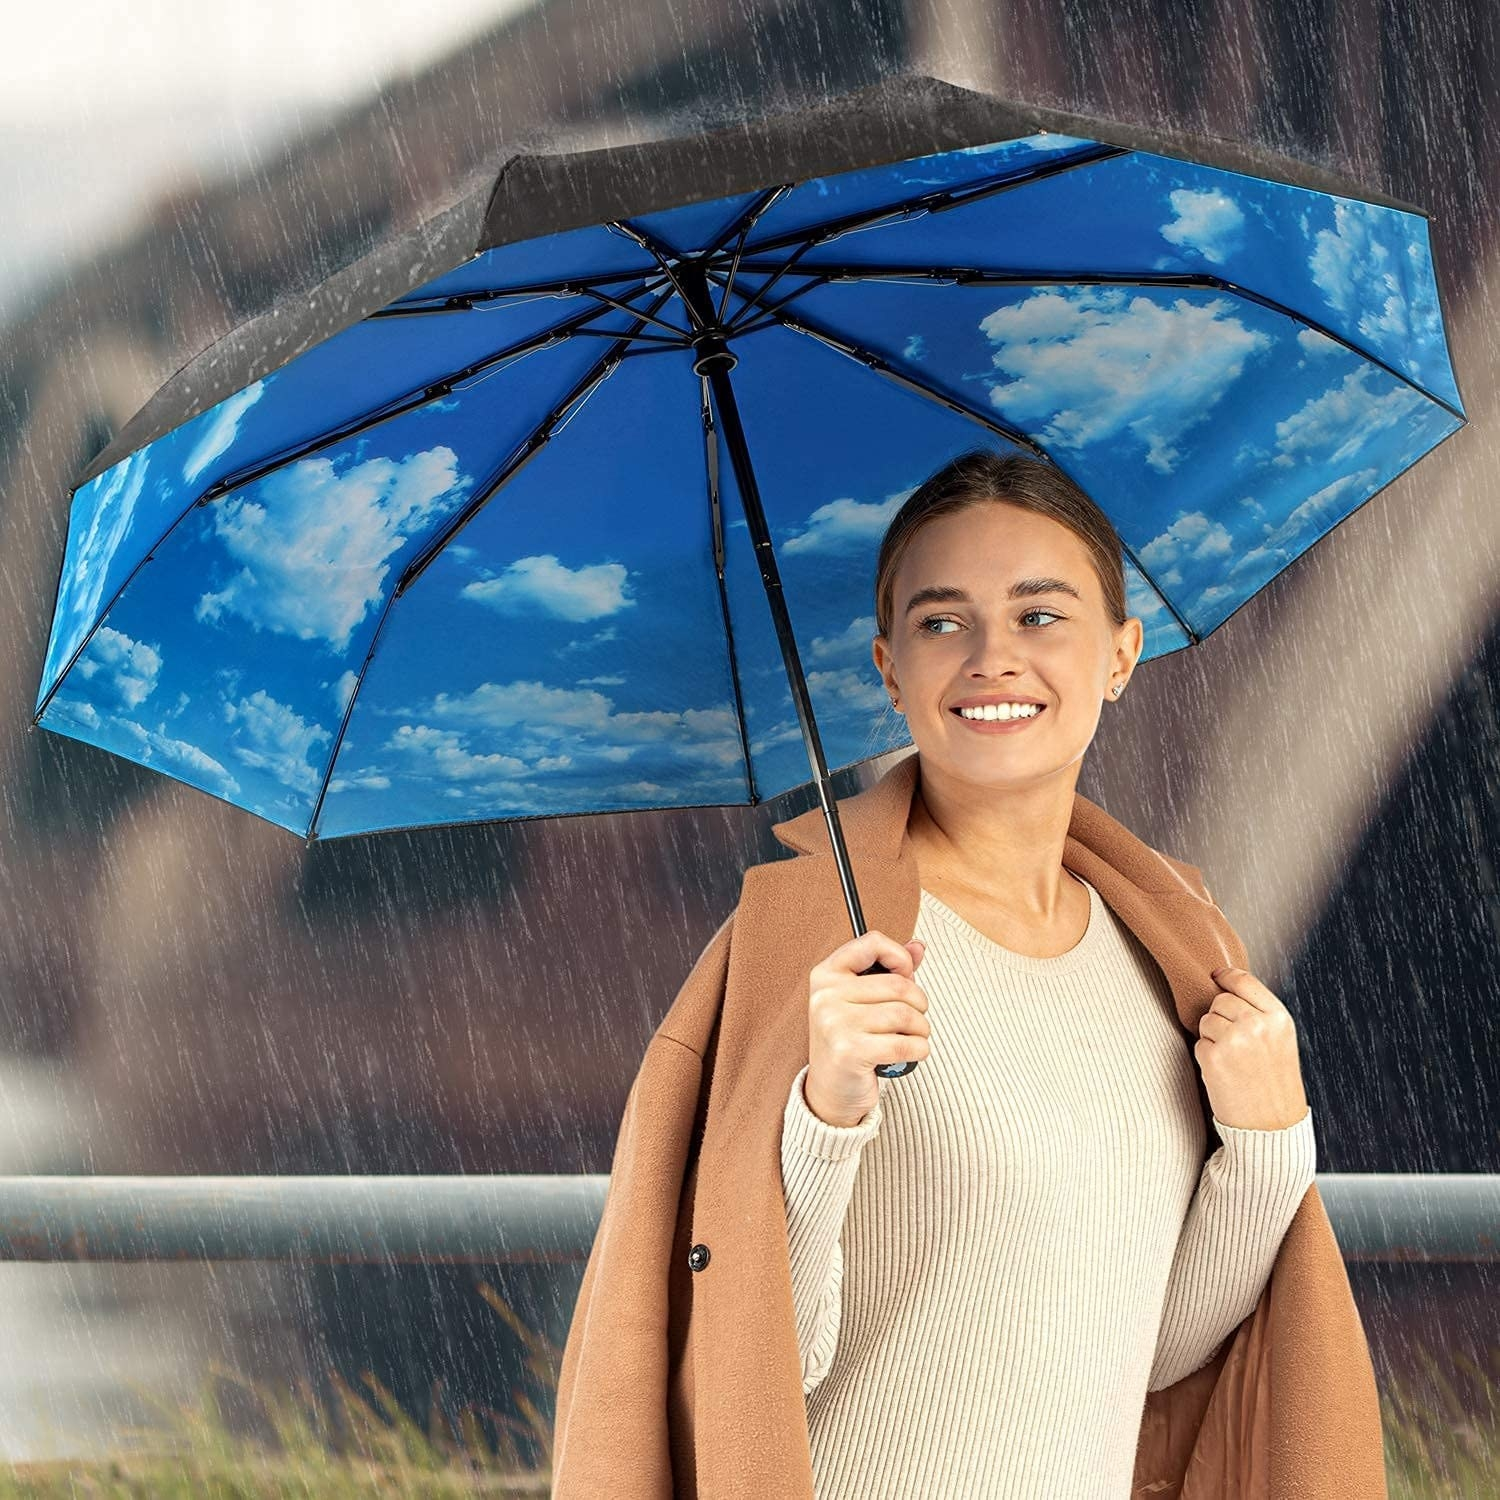 A smiling person holding an umbrella; a cloud graphic is visible on the underside of the canopy